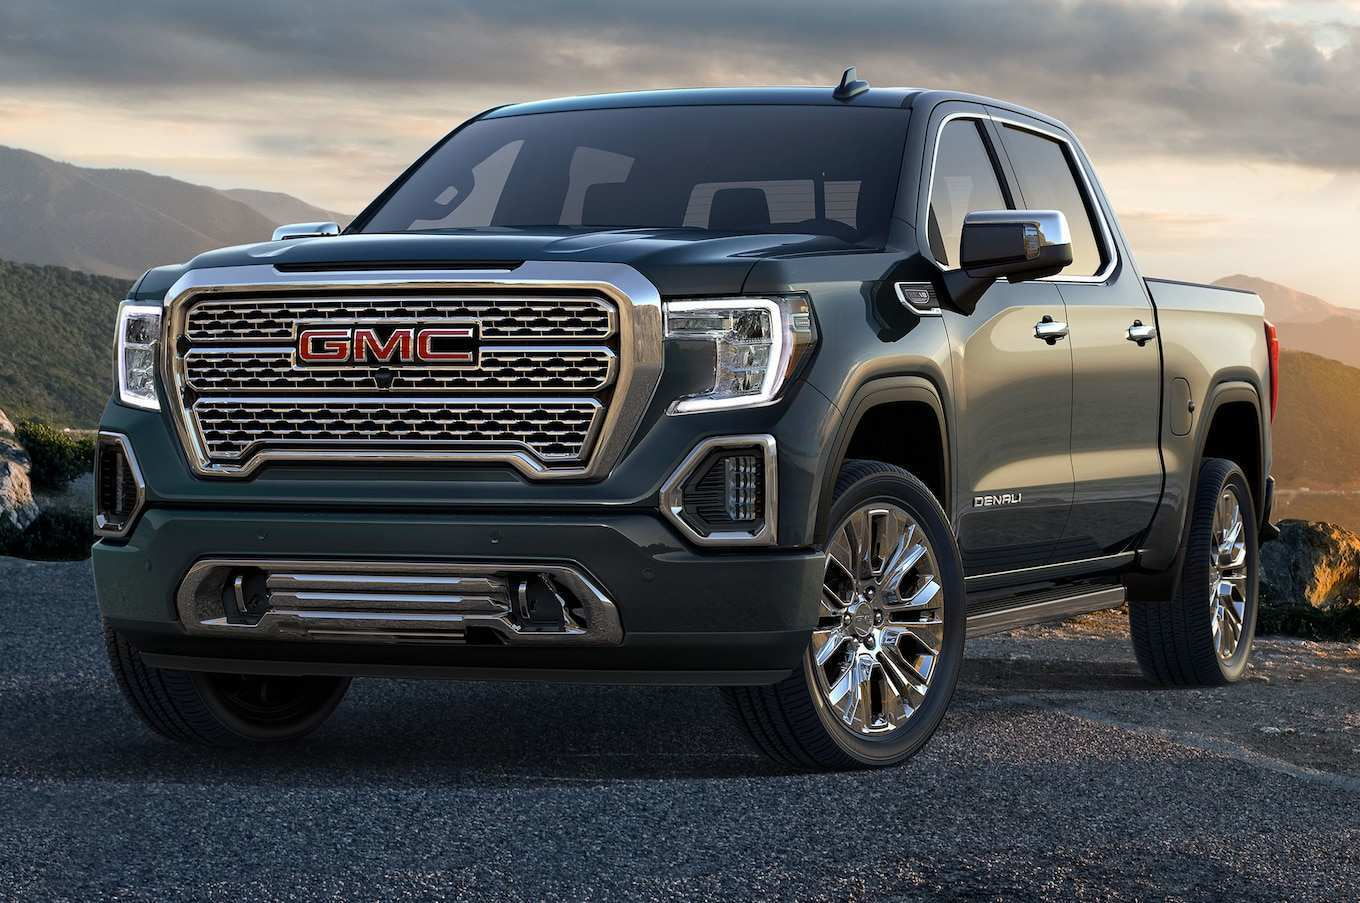 34 Concept of 2019 Gmc Images Performance with 2019 Gmc Images